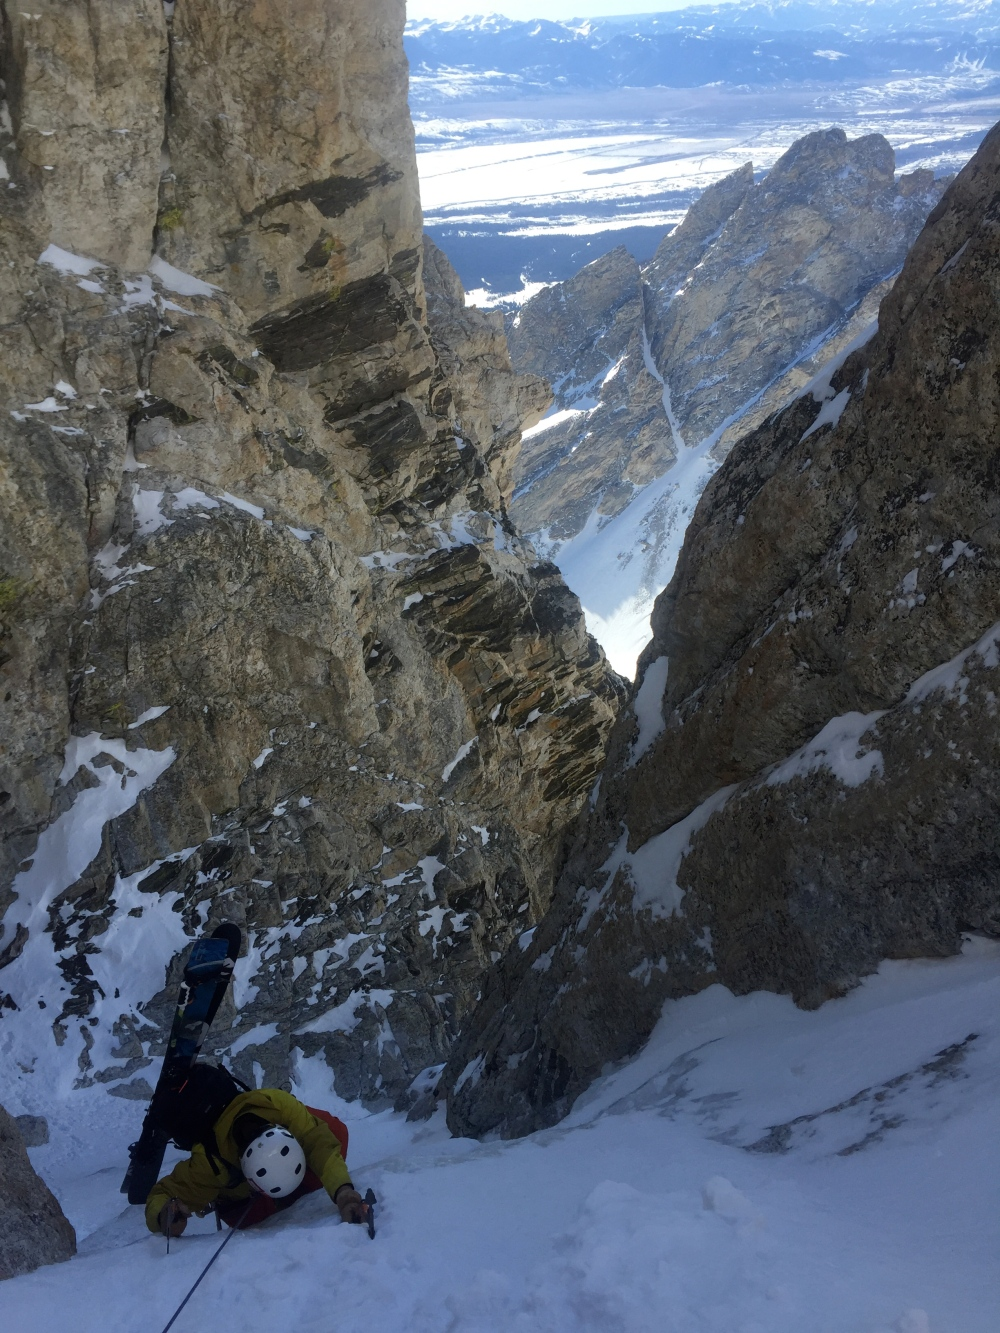 Tanner Flanagan Climbing Up and Over the Ice Bulge in the Chevy Couloir.